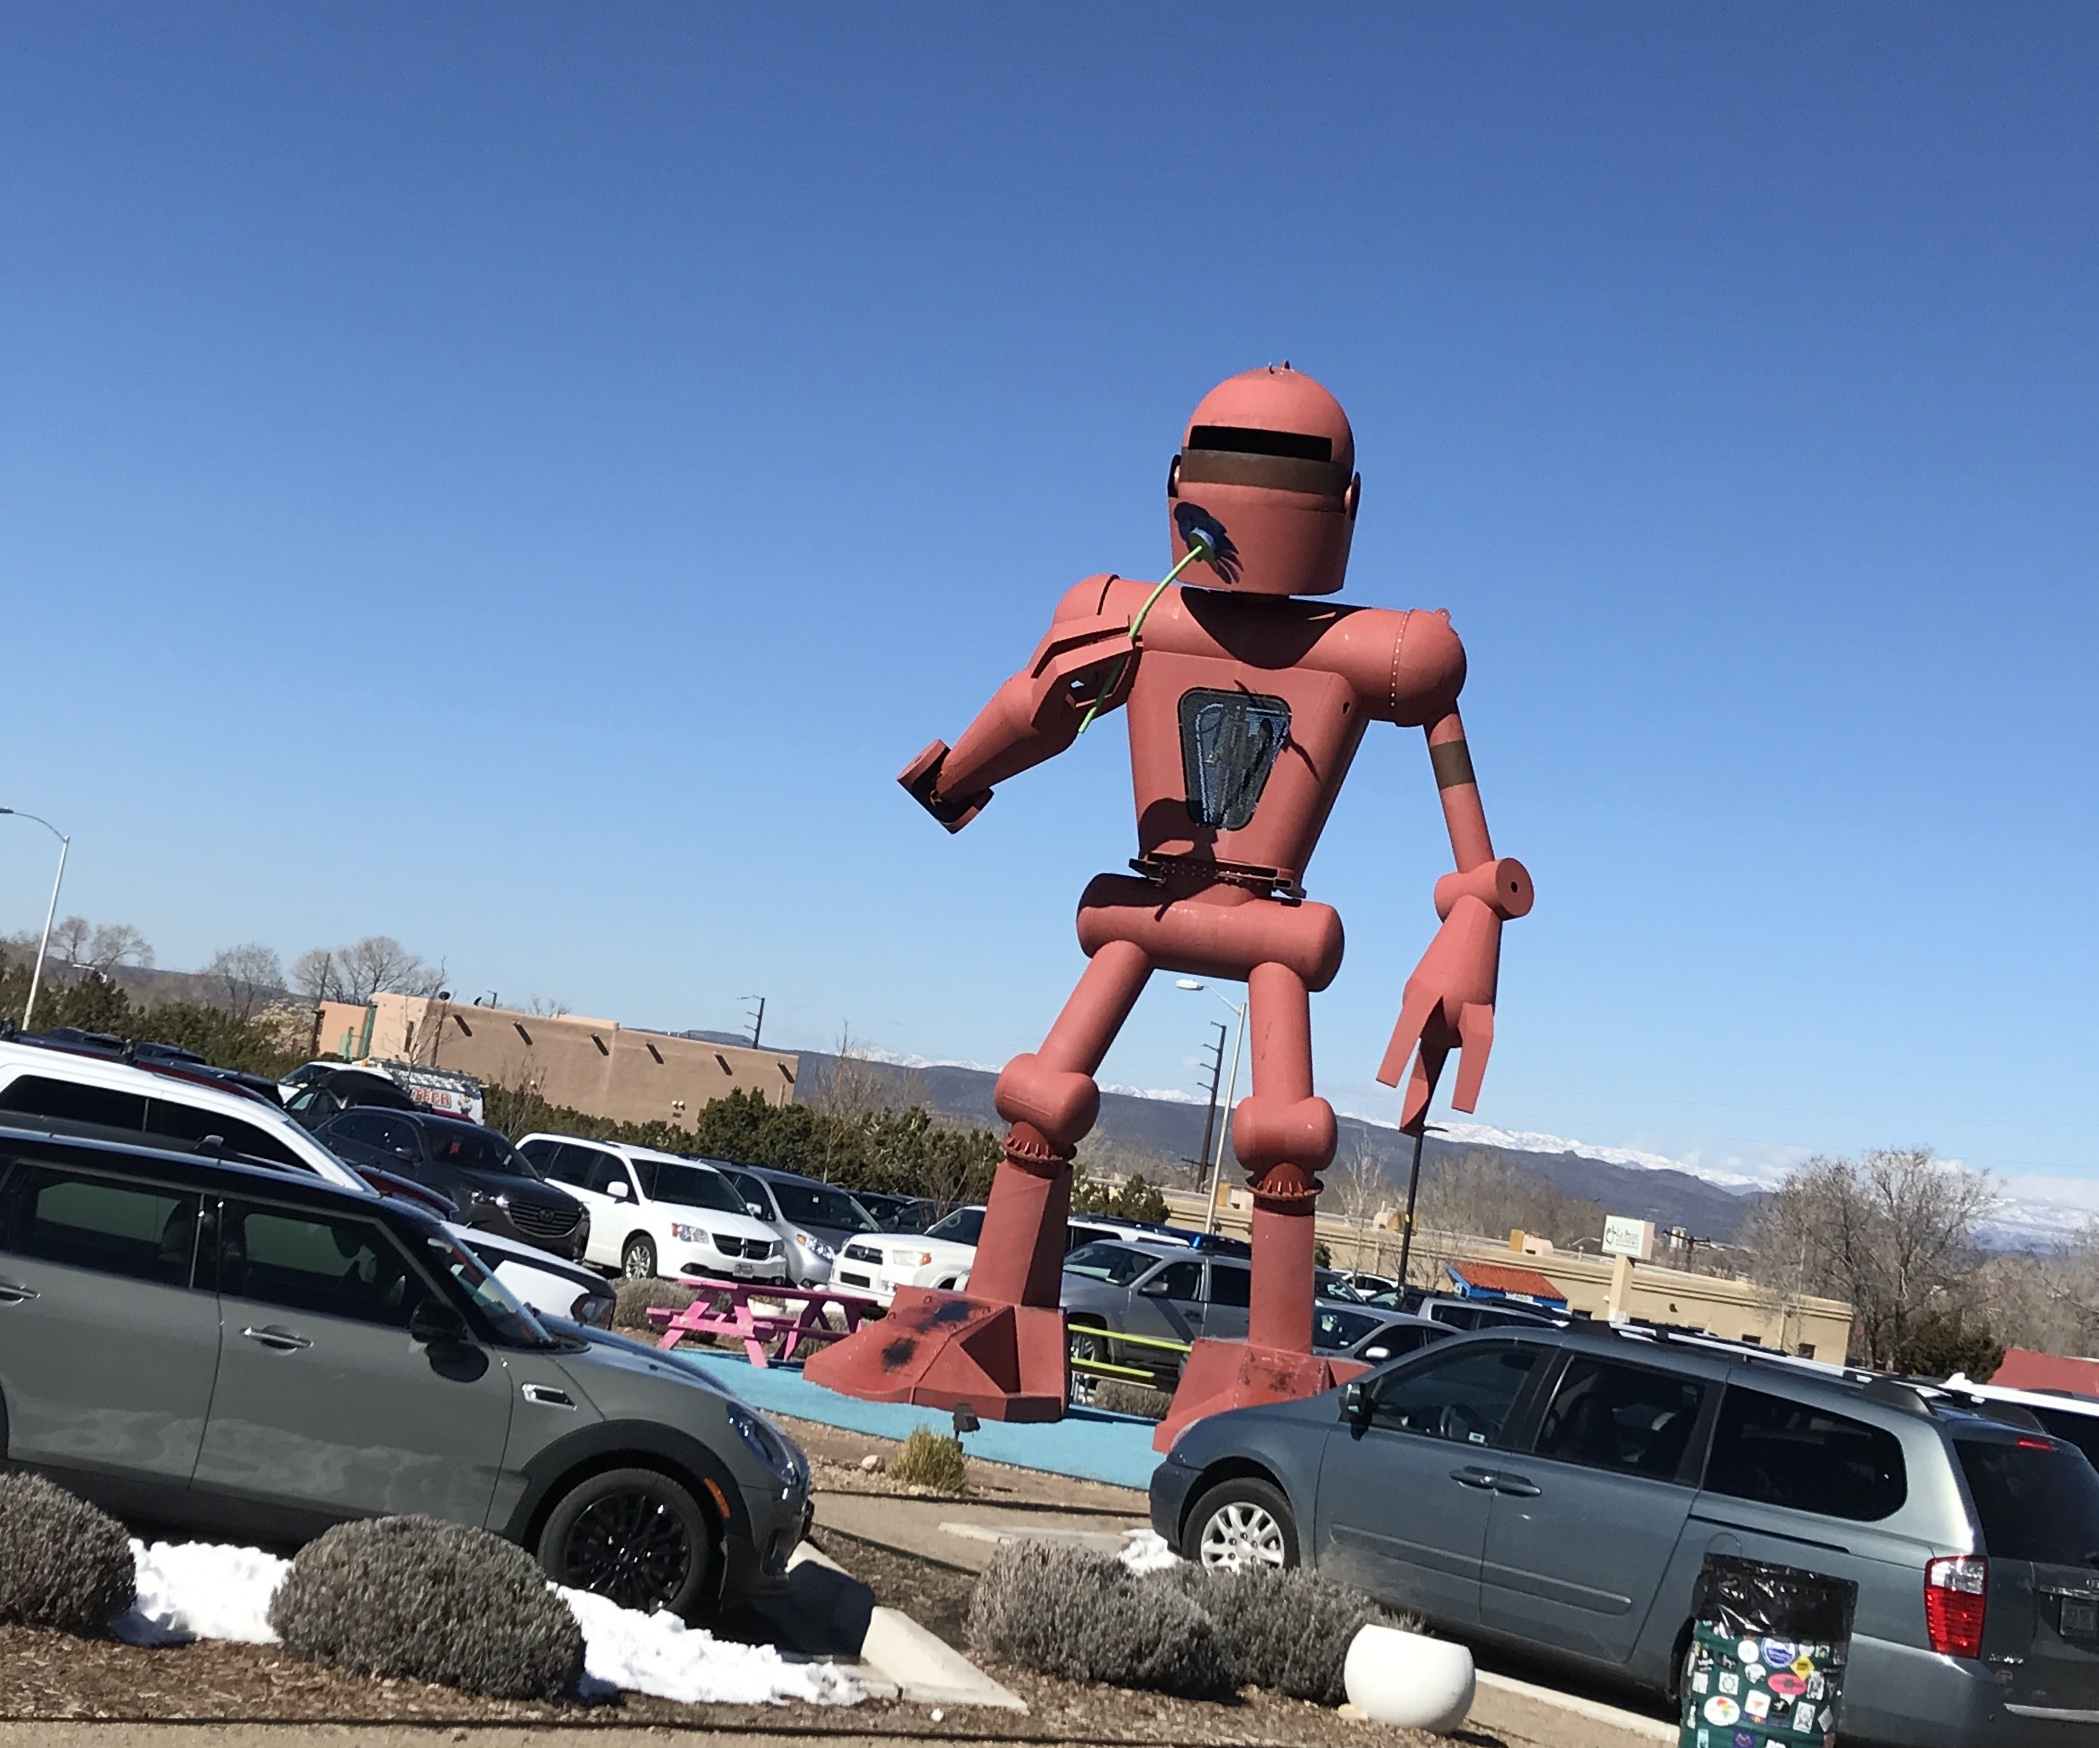 Some art outside in the parking lot